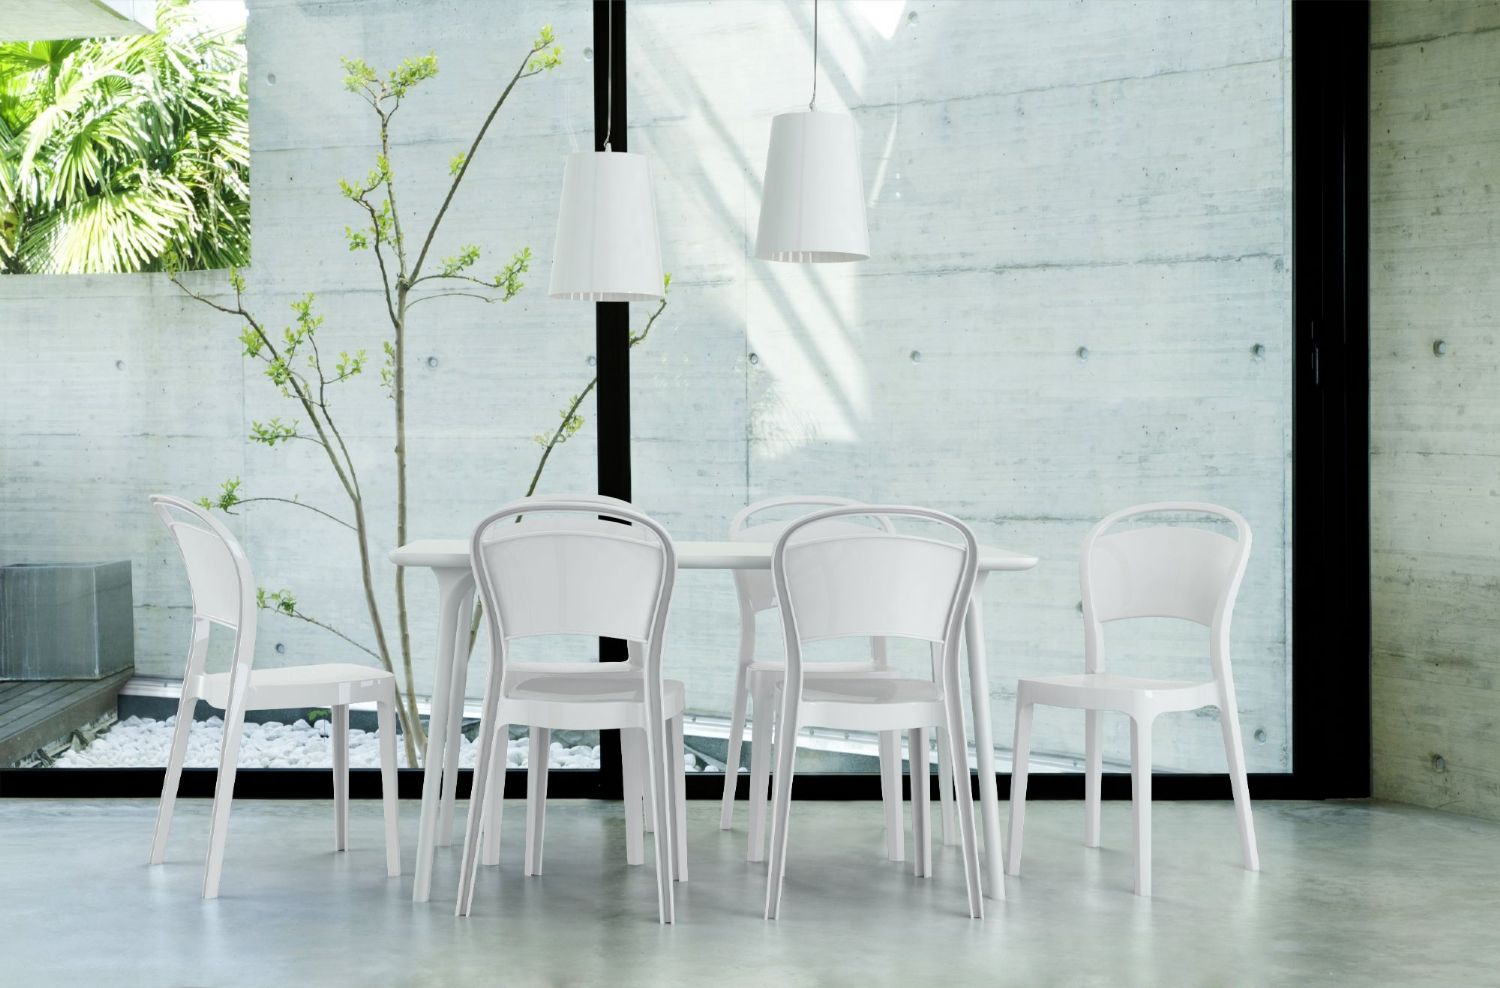 Bo Polycarbonate Dining Chair Transparent Clear ISP005-TCL - 1